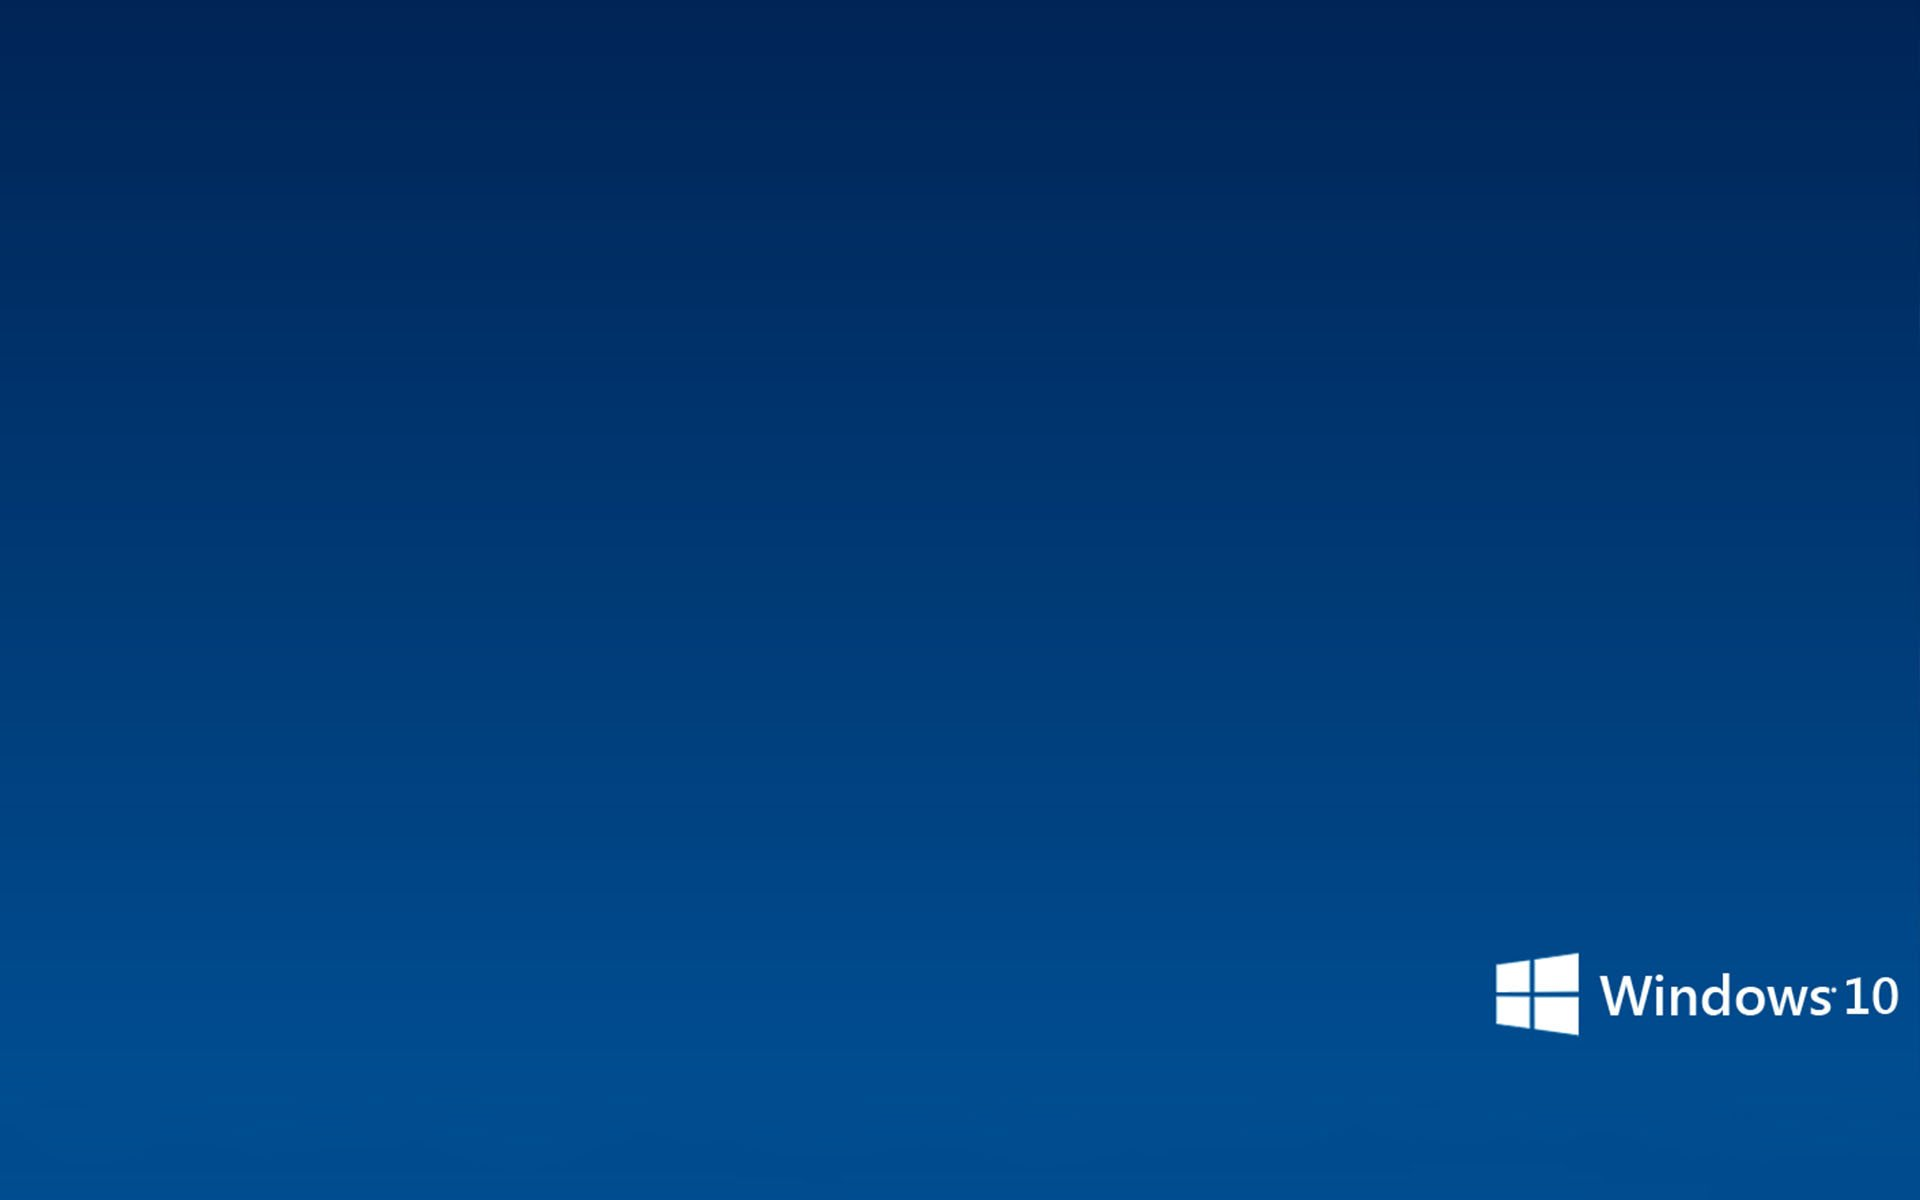 Microsoft windows 10 wallpapers wallpapersafari for Microsoft windows 10